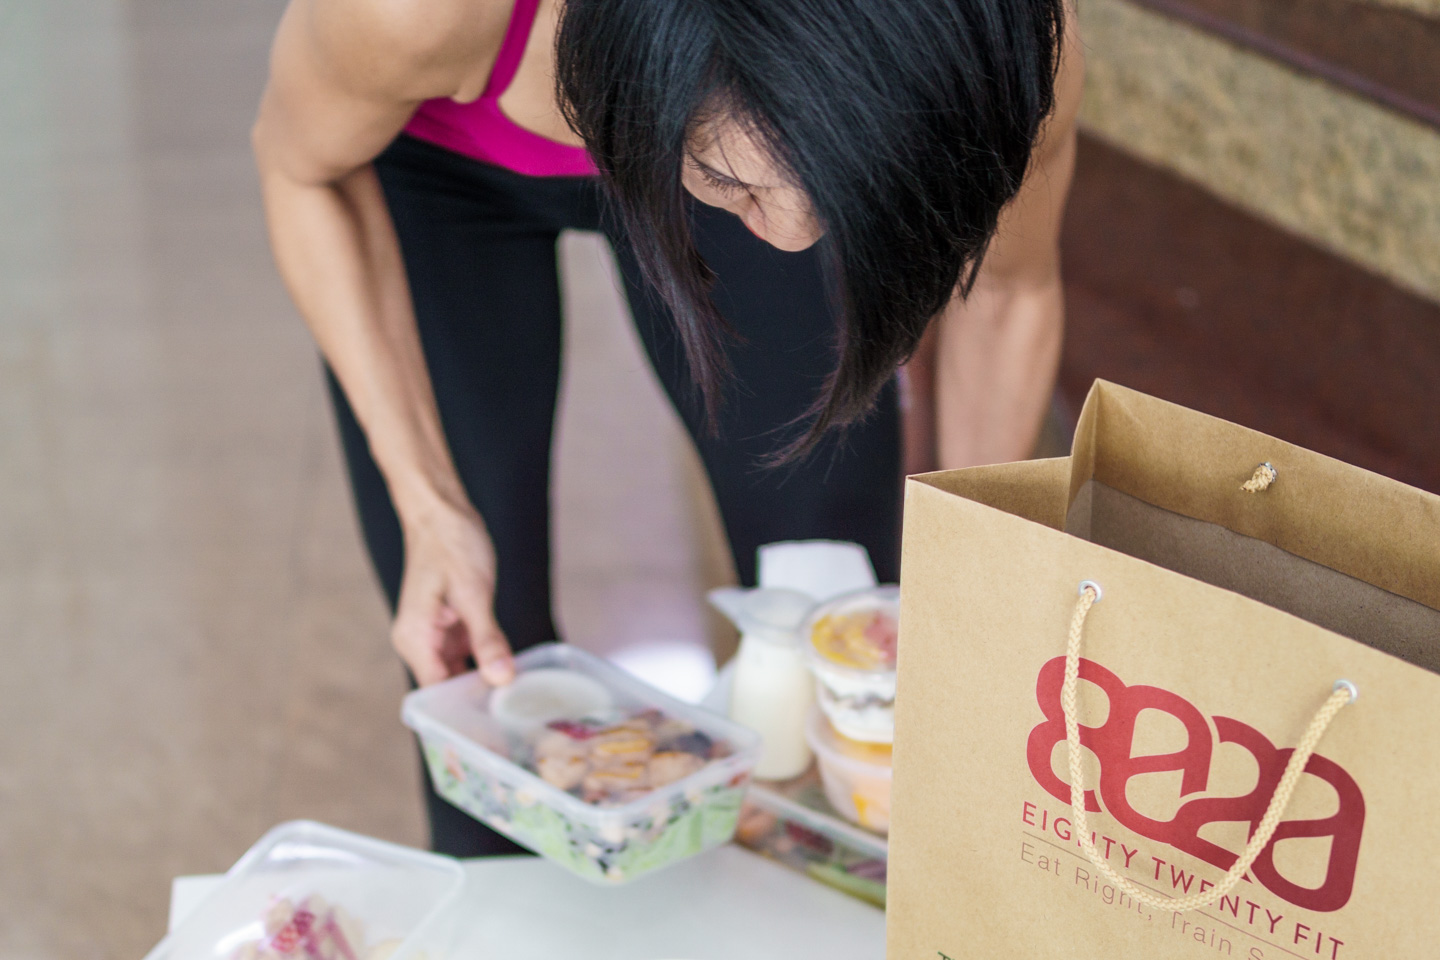 How 8020Fit Wants to Educate Vietnamese Consumers About Healthy Living-9